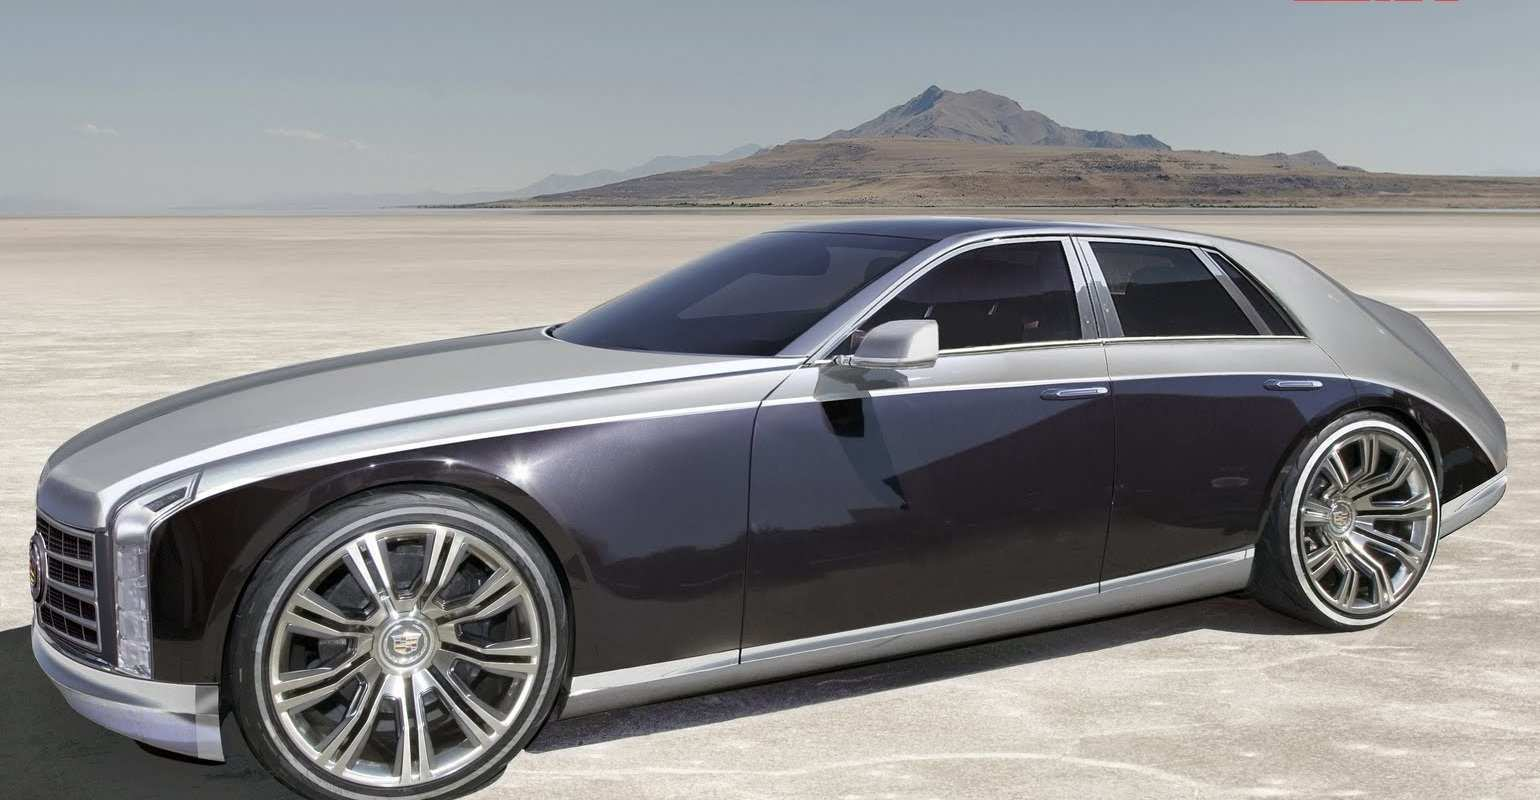 64 Concept of 2020 Cadillac Dts Pictures for 2020 Cadillac Dts